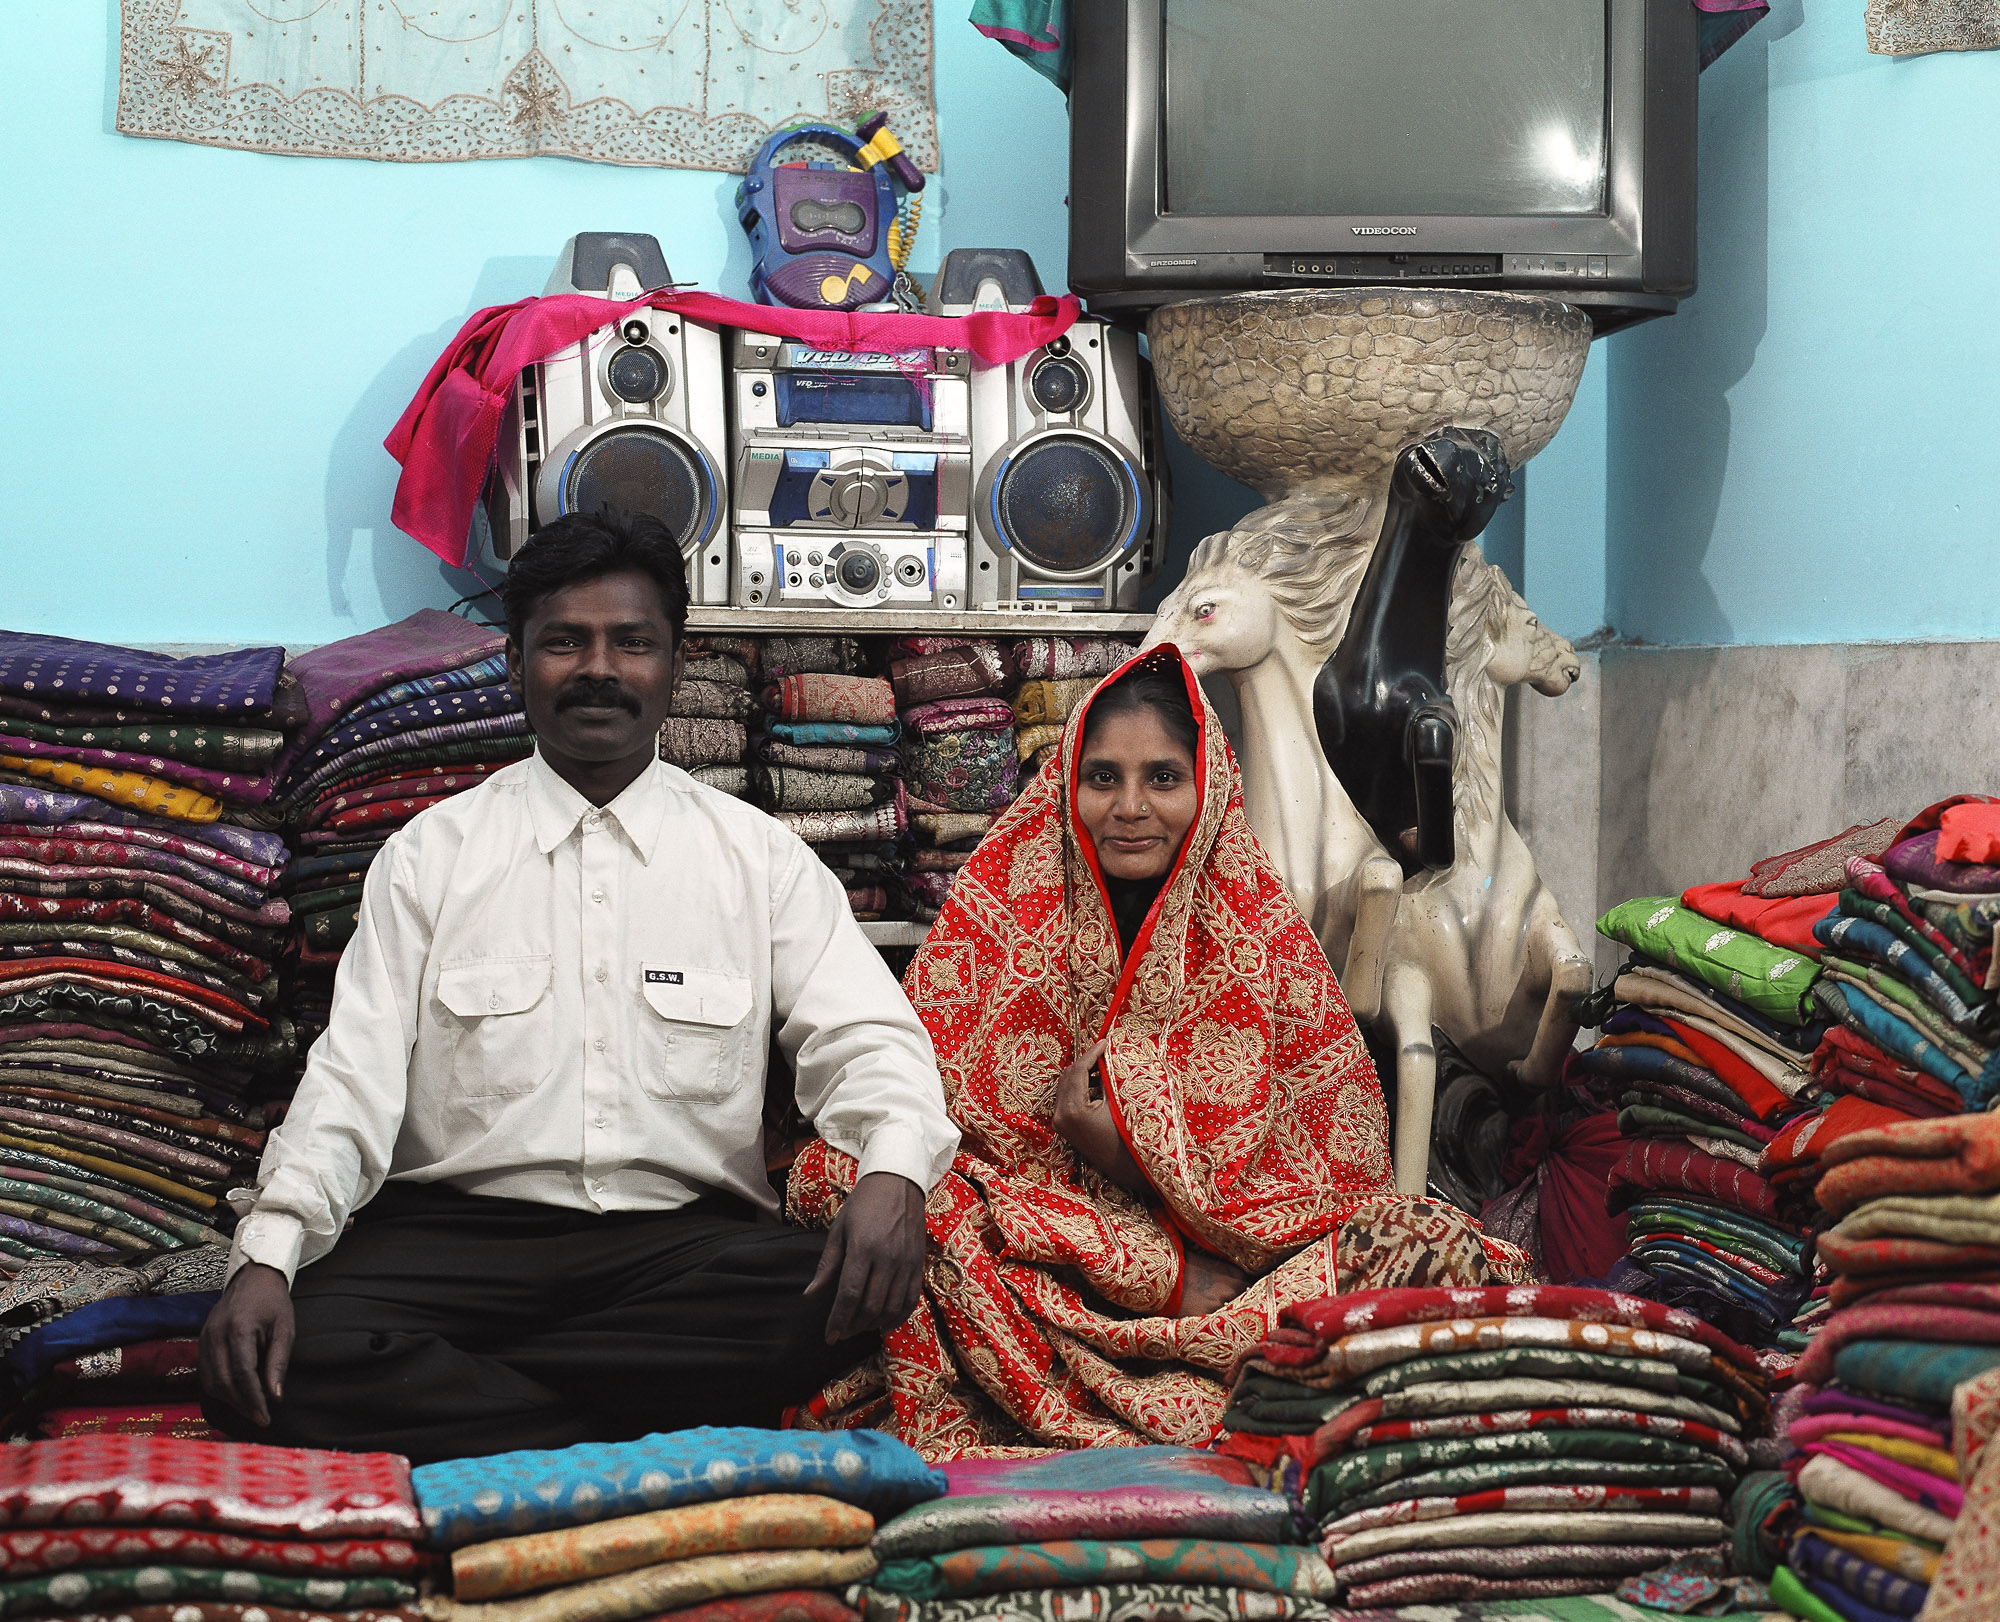 The higher quality clothing will be sold further afield. This Waghri couple deal in silk saris in their home. Such traders amass hundreds of silk saris cast out from wedding trousseau into the secondhand markets for re-sale.